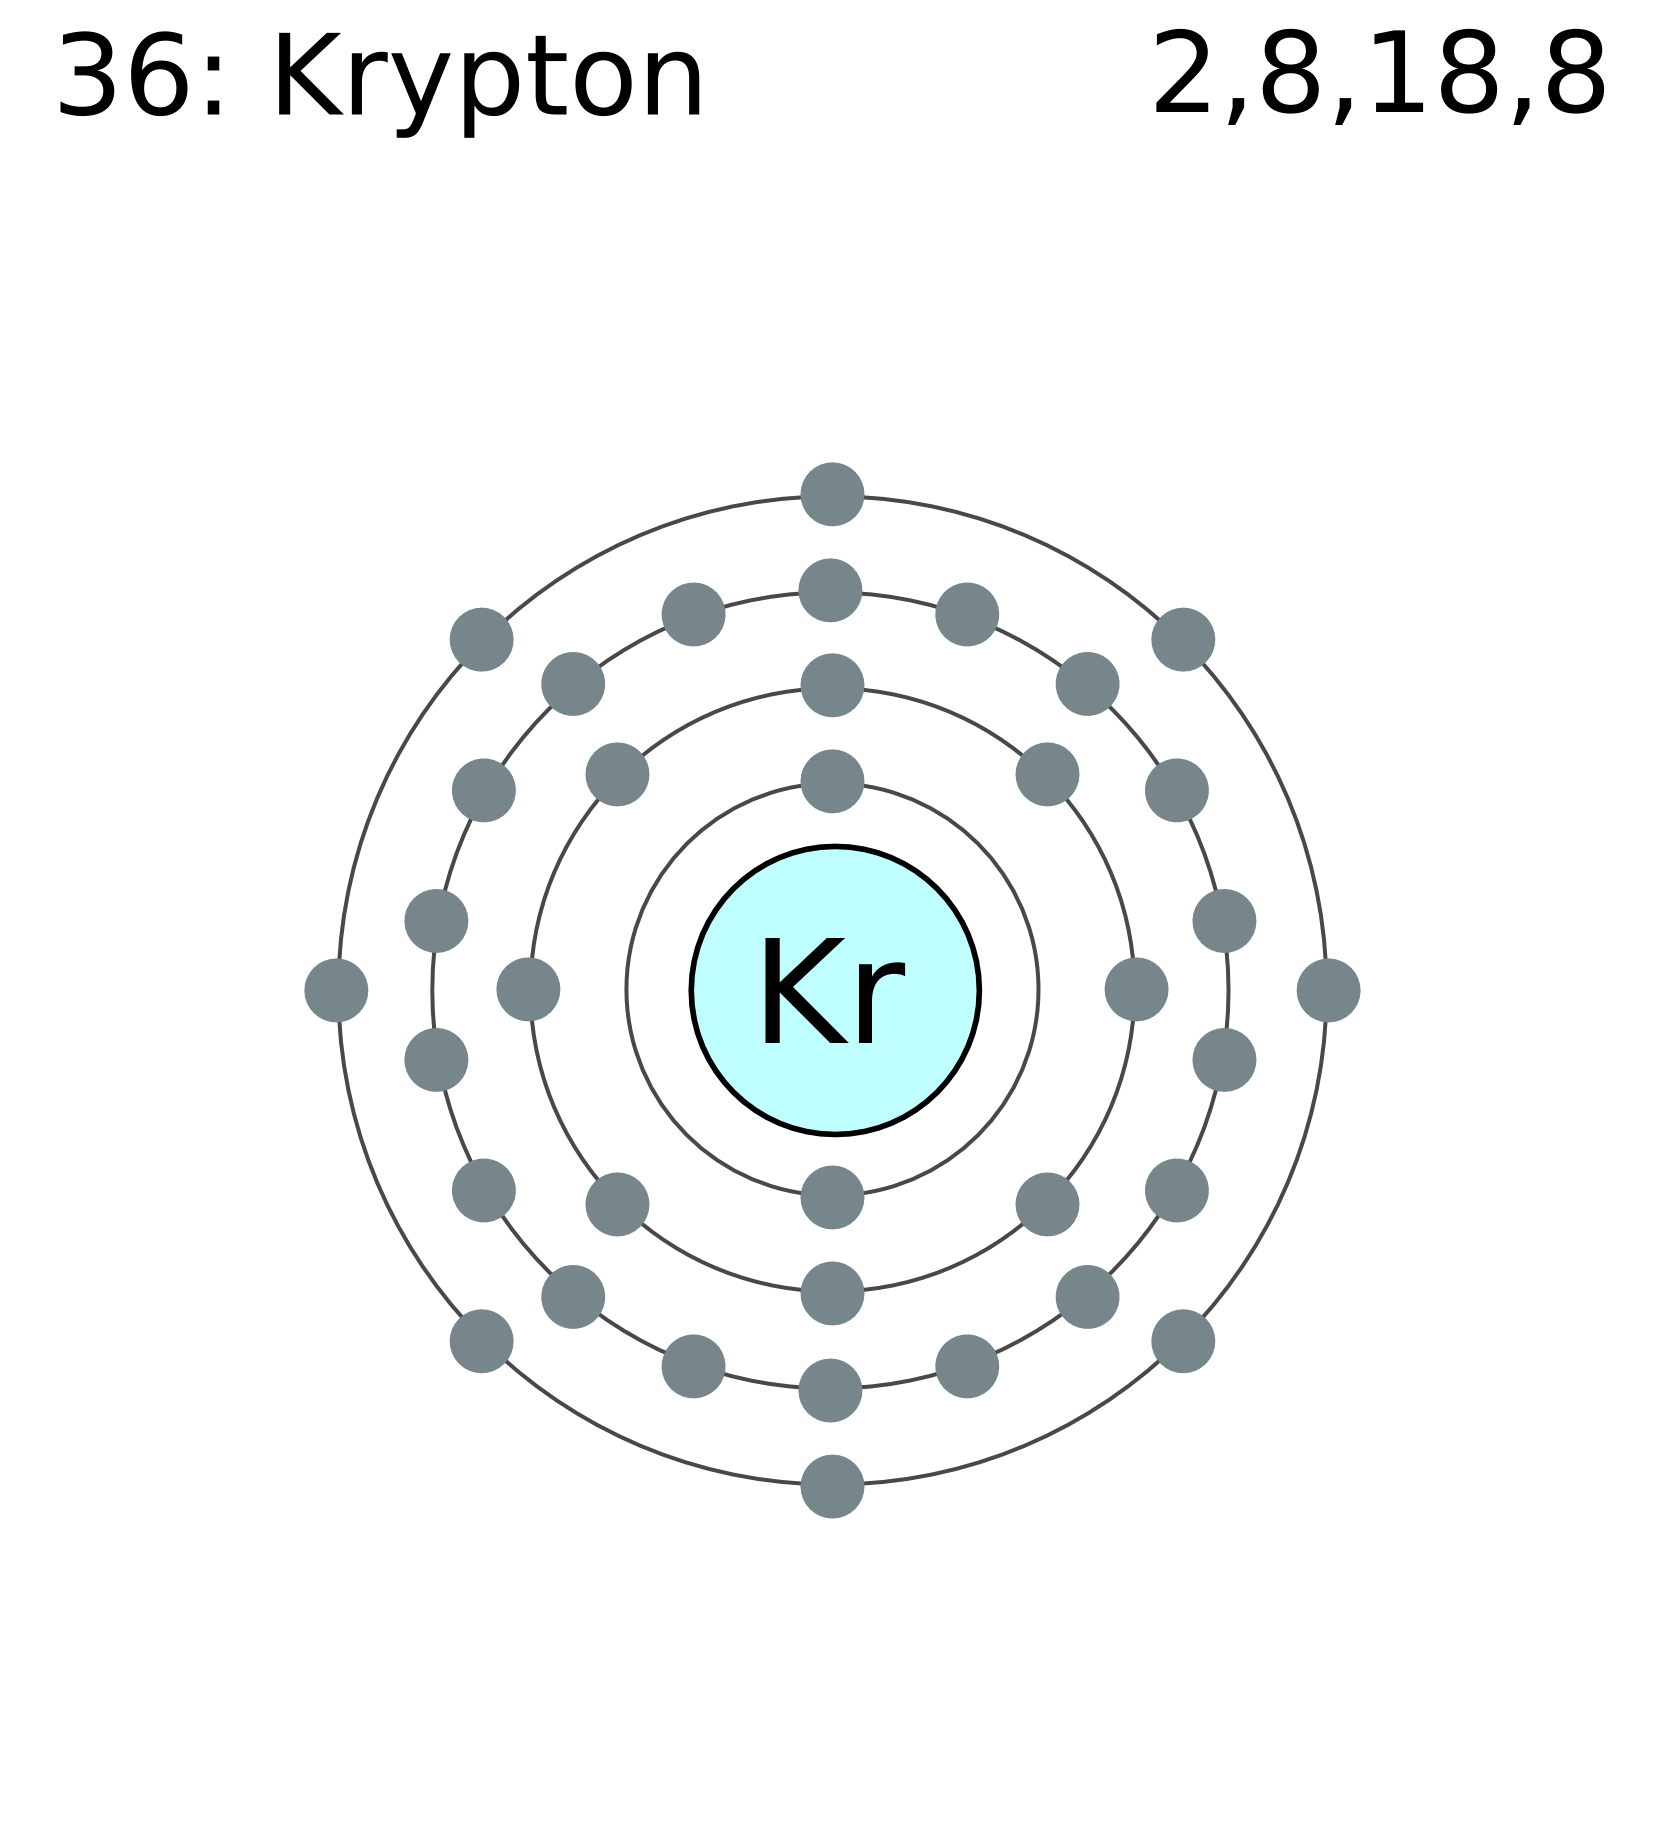 electron dot diagram for p clarke single phase induction motor wiring krypton facts about